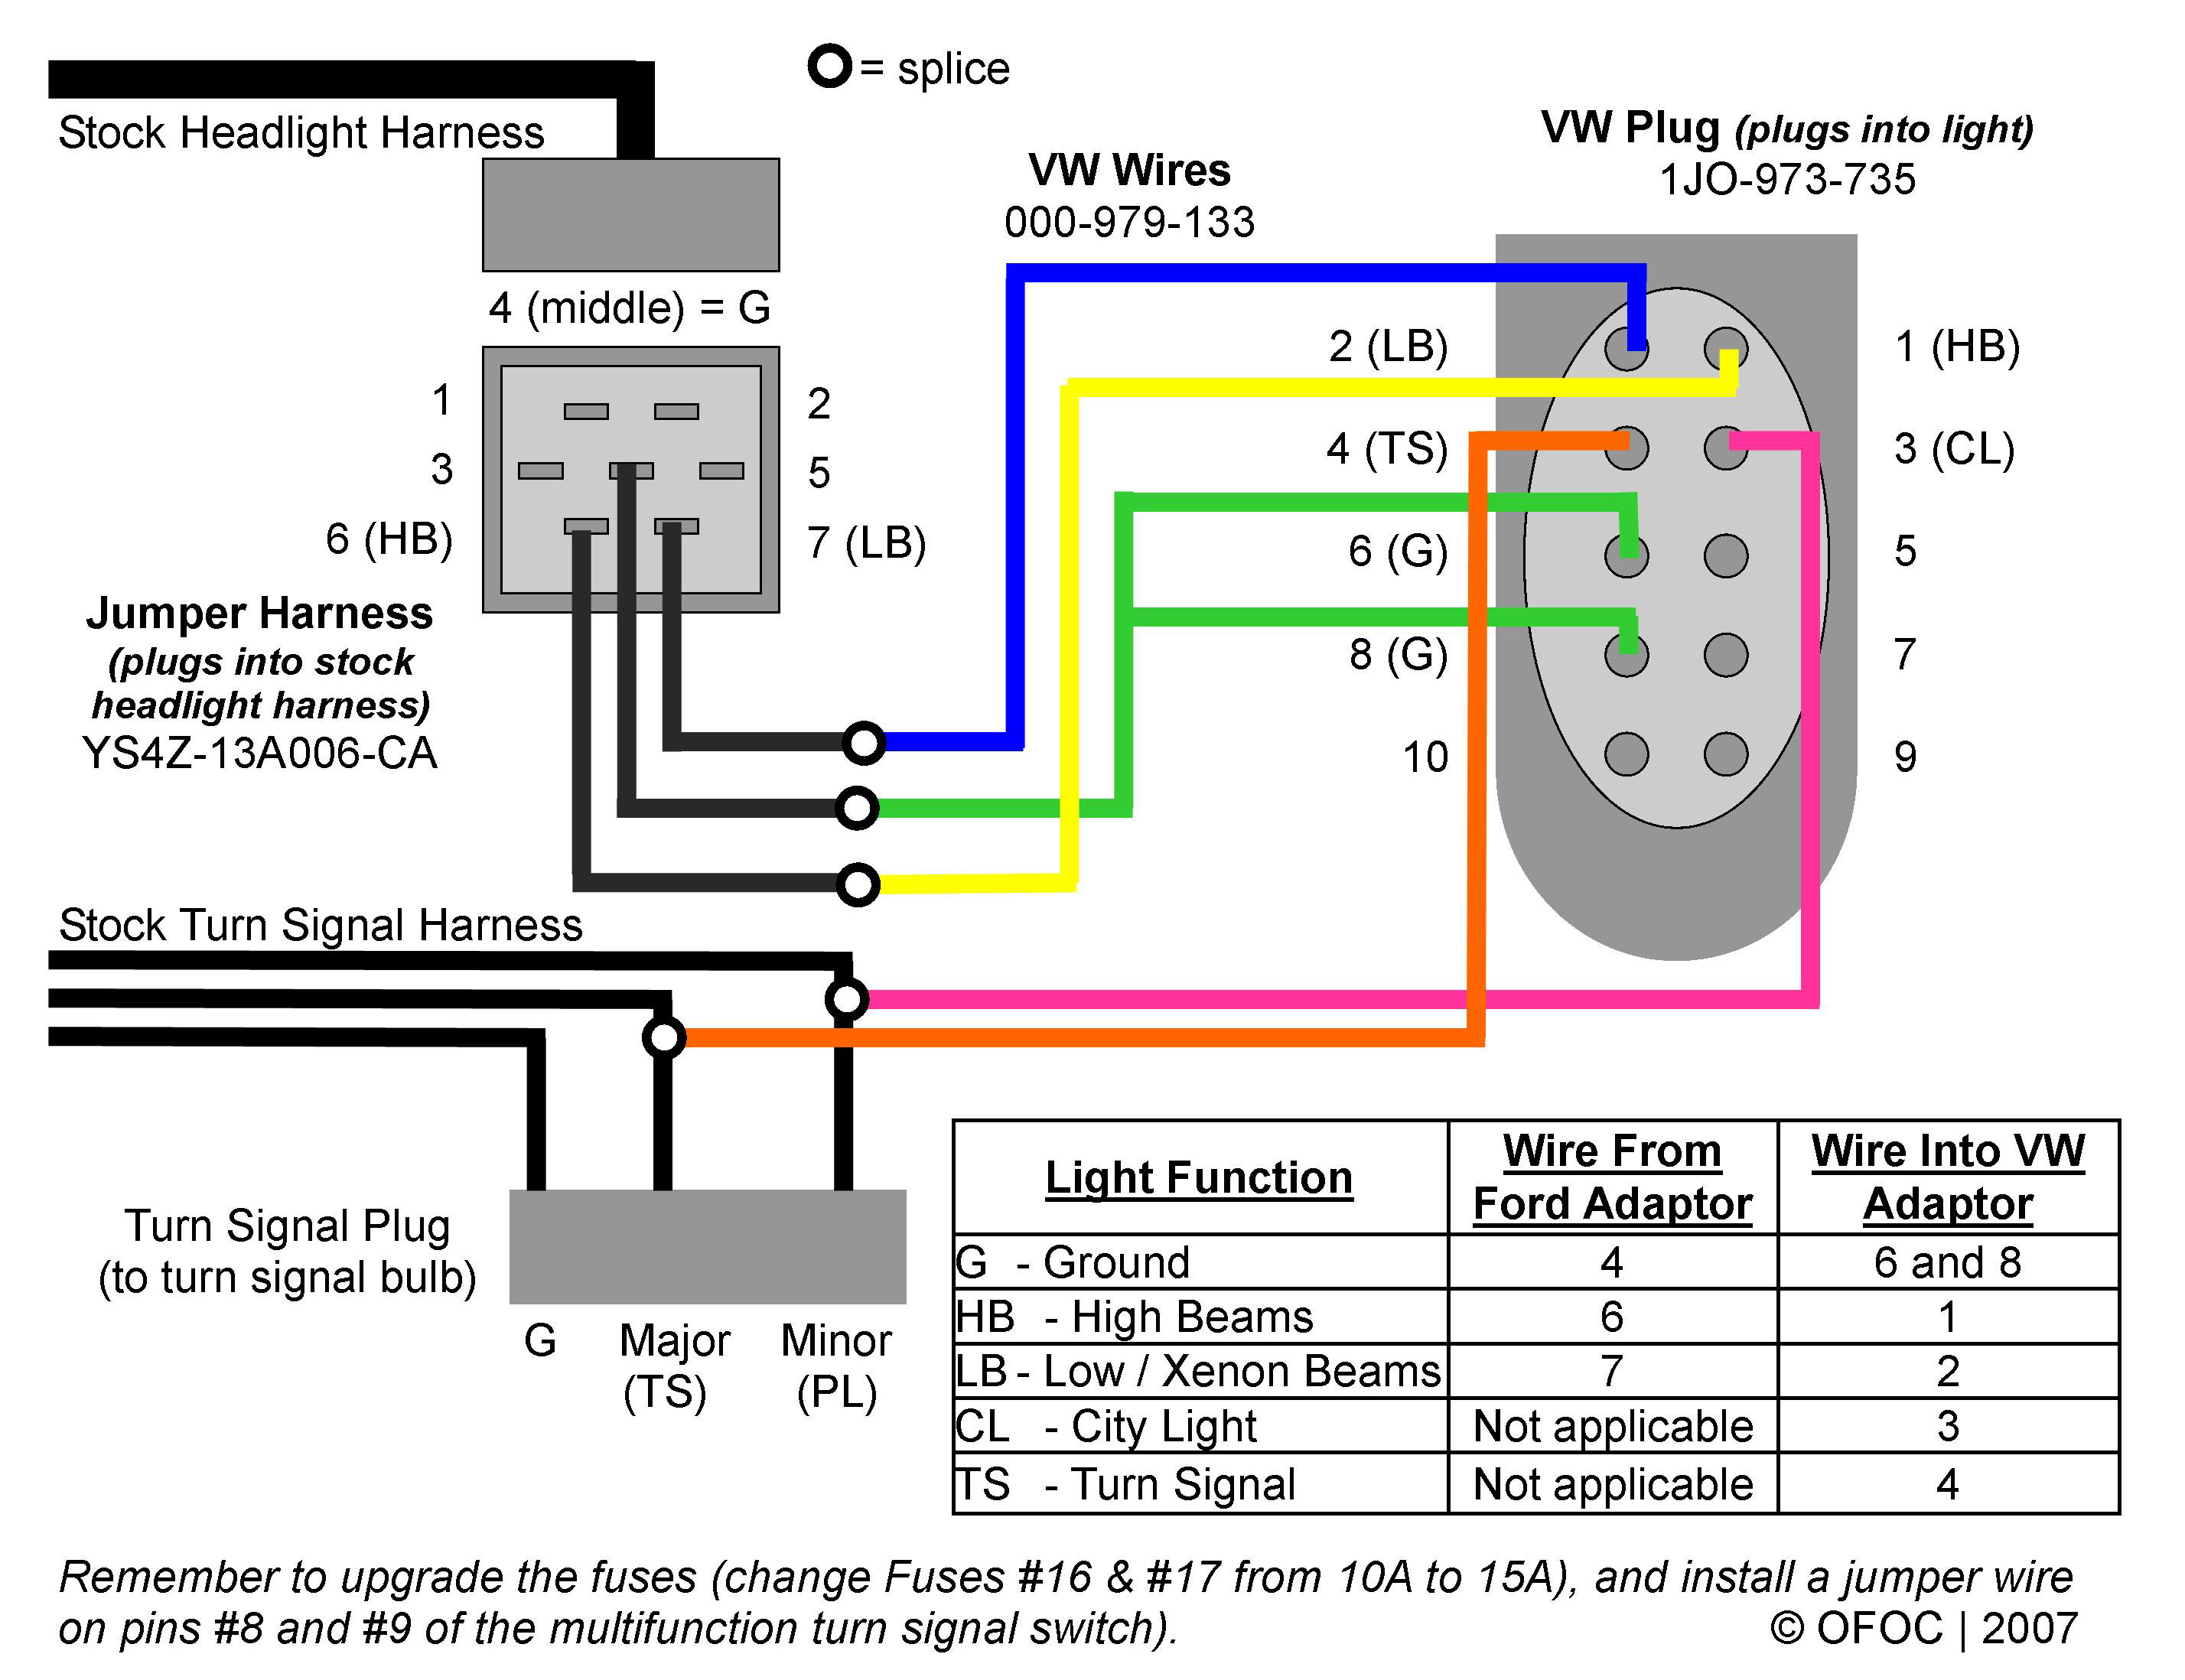 2003 Svt Headlights Ford Focus Forum St Fuse Panel Diagram Car Forums And Automotive Chat Rs